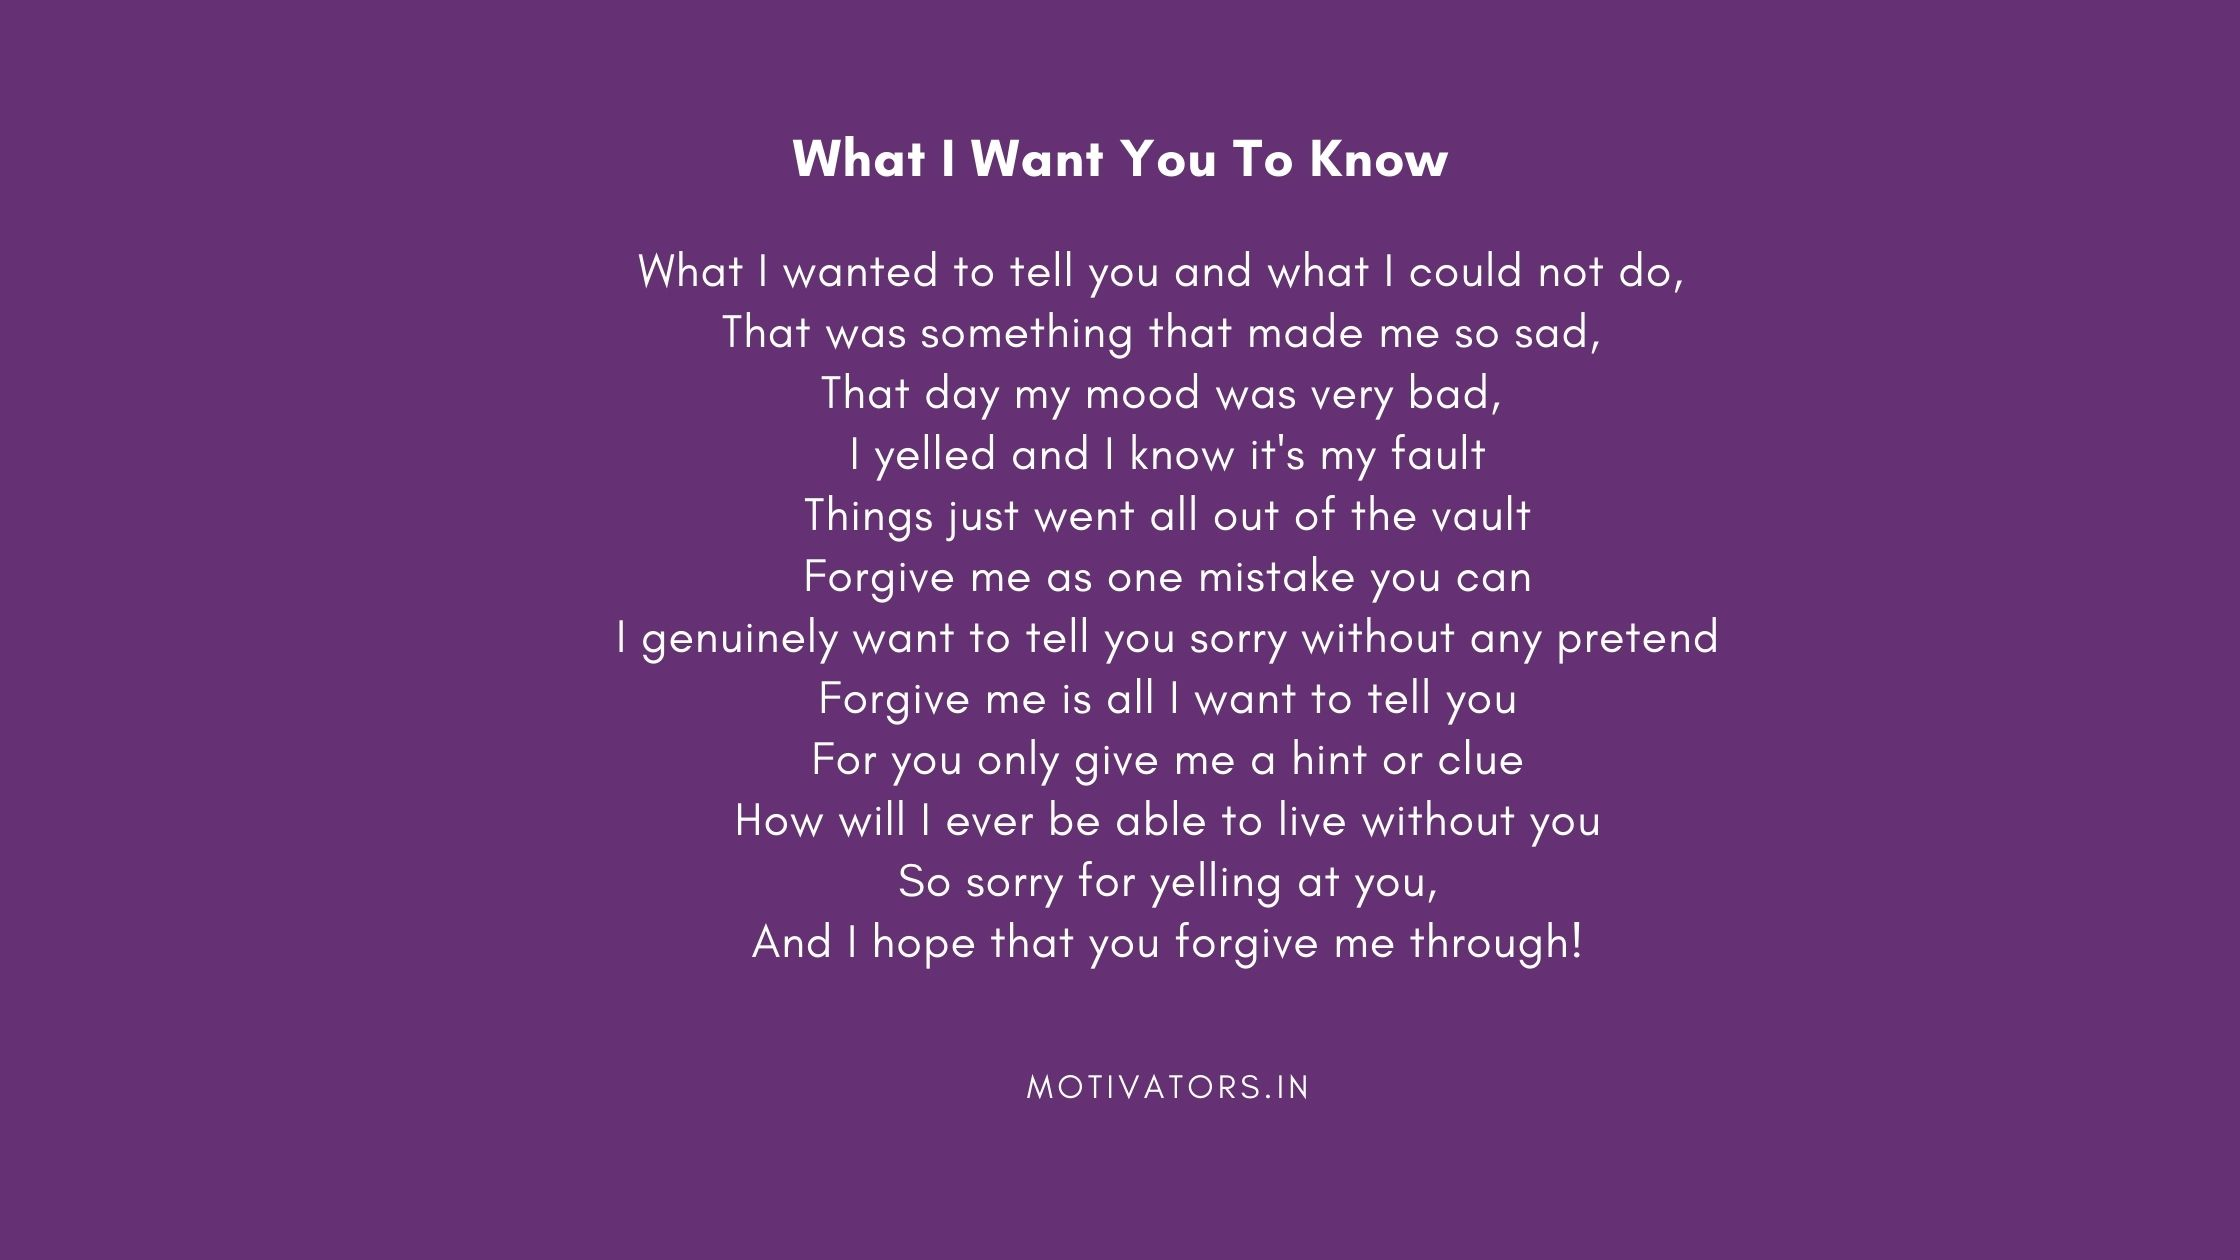 What I Want You To Know